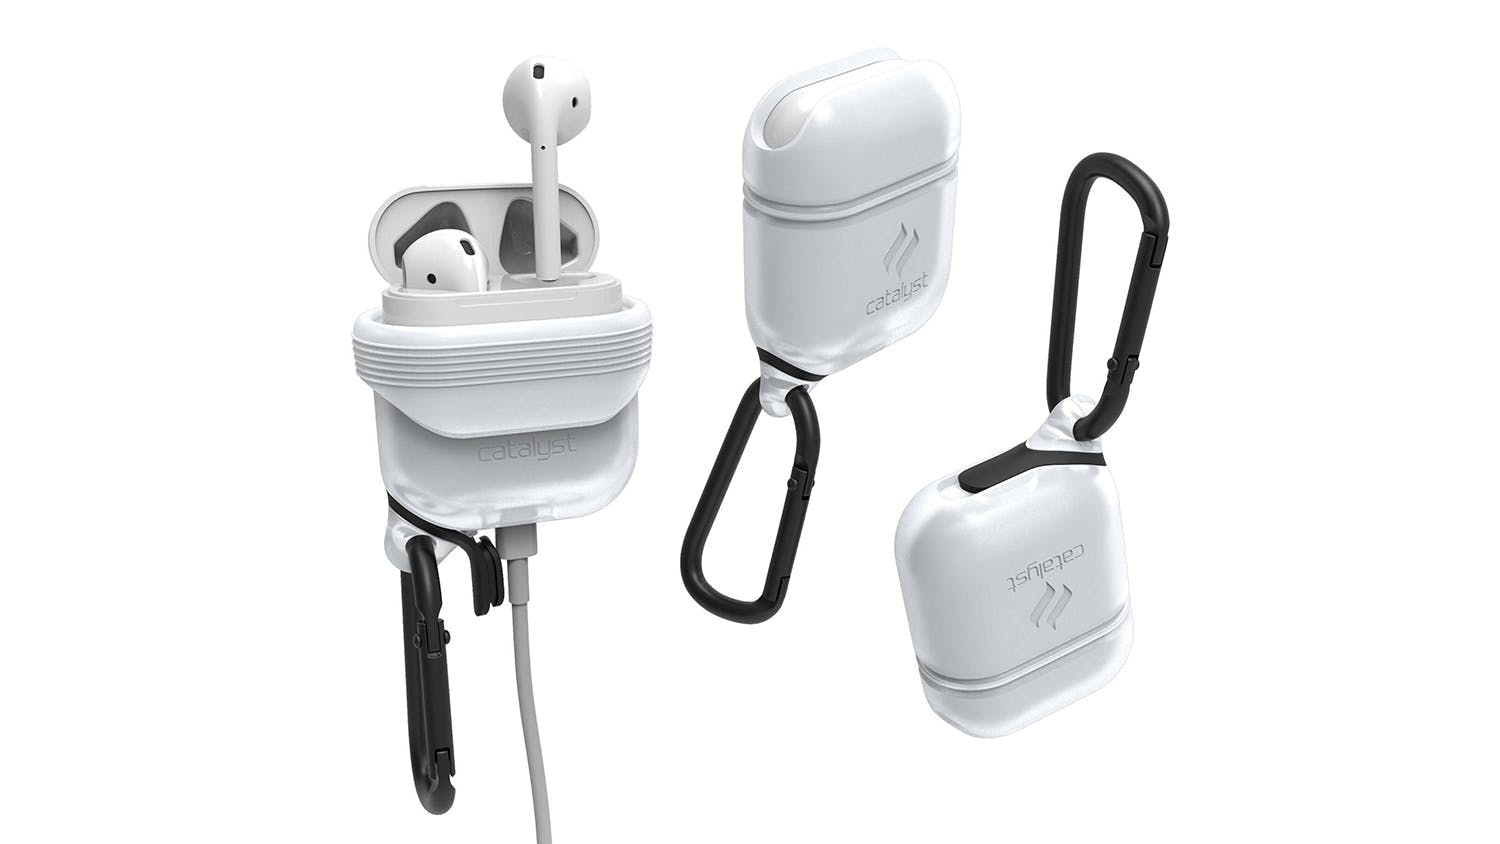 Catalyst Waterproof Case for AirPods - Frost White